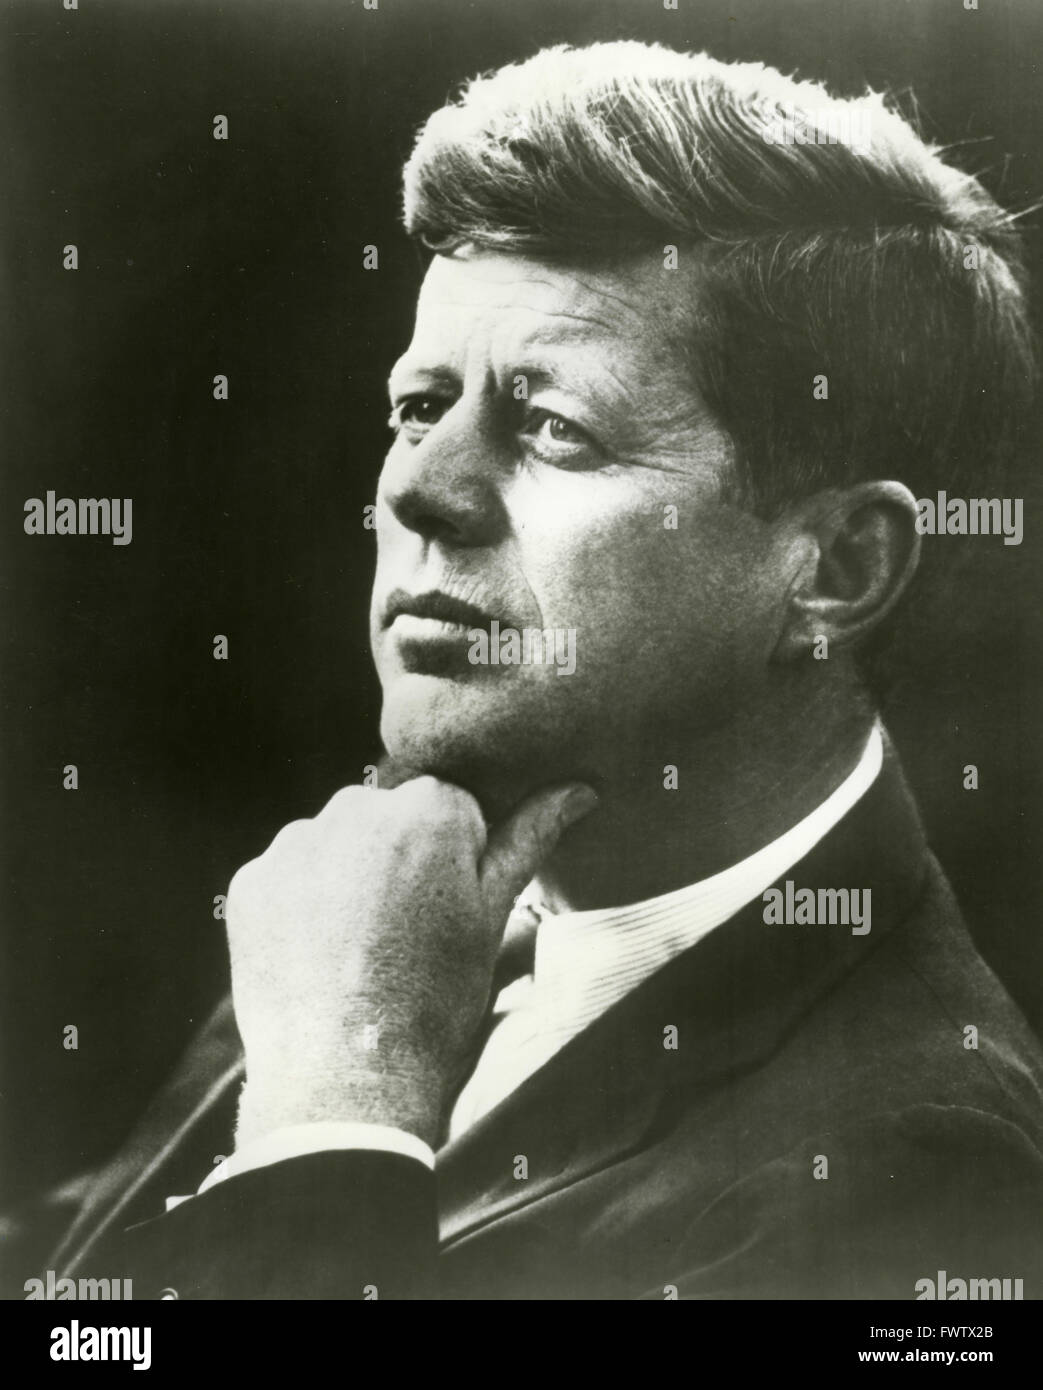 The American President John F. Kennedy - Stock Image